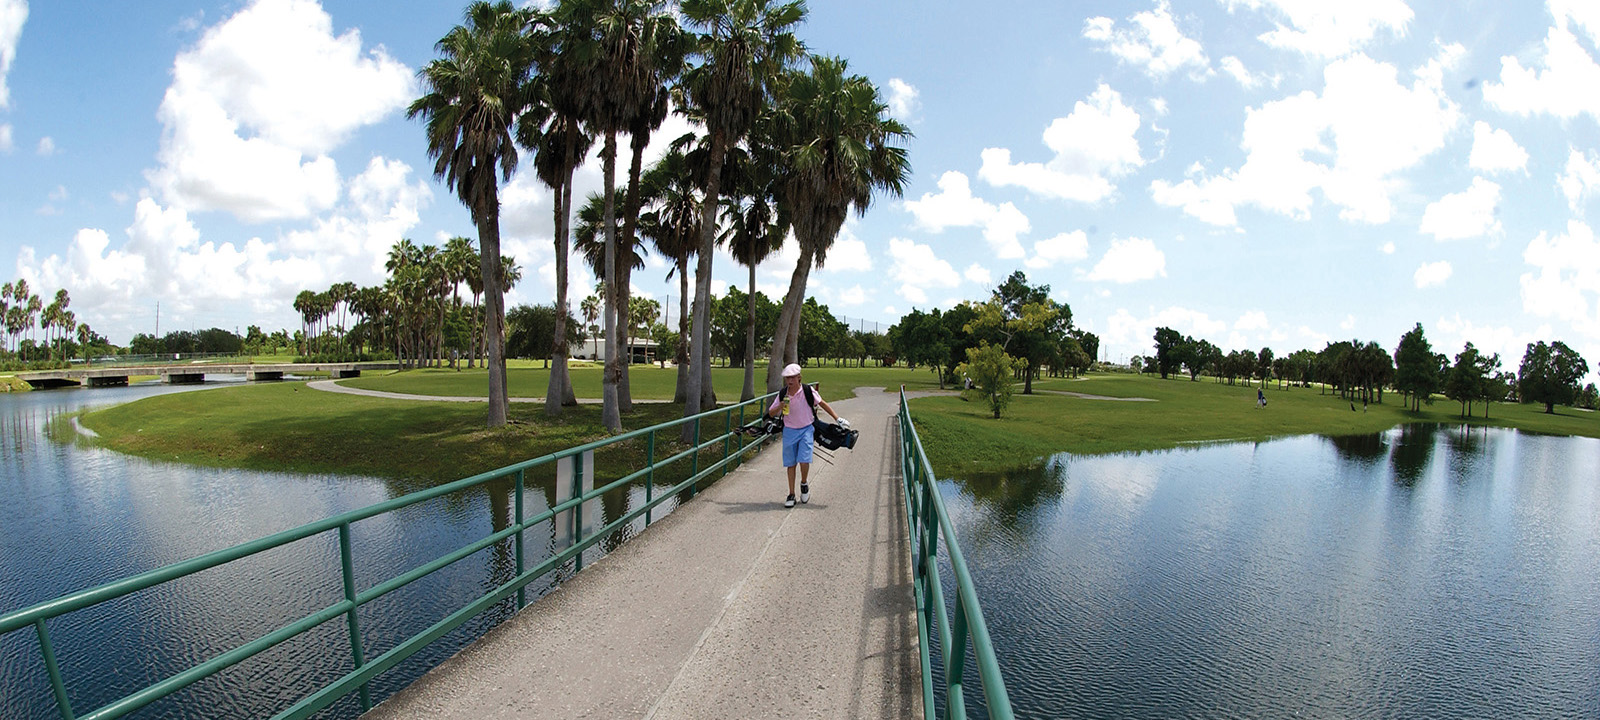 Palmetto-Golf-Course_04